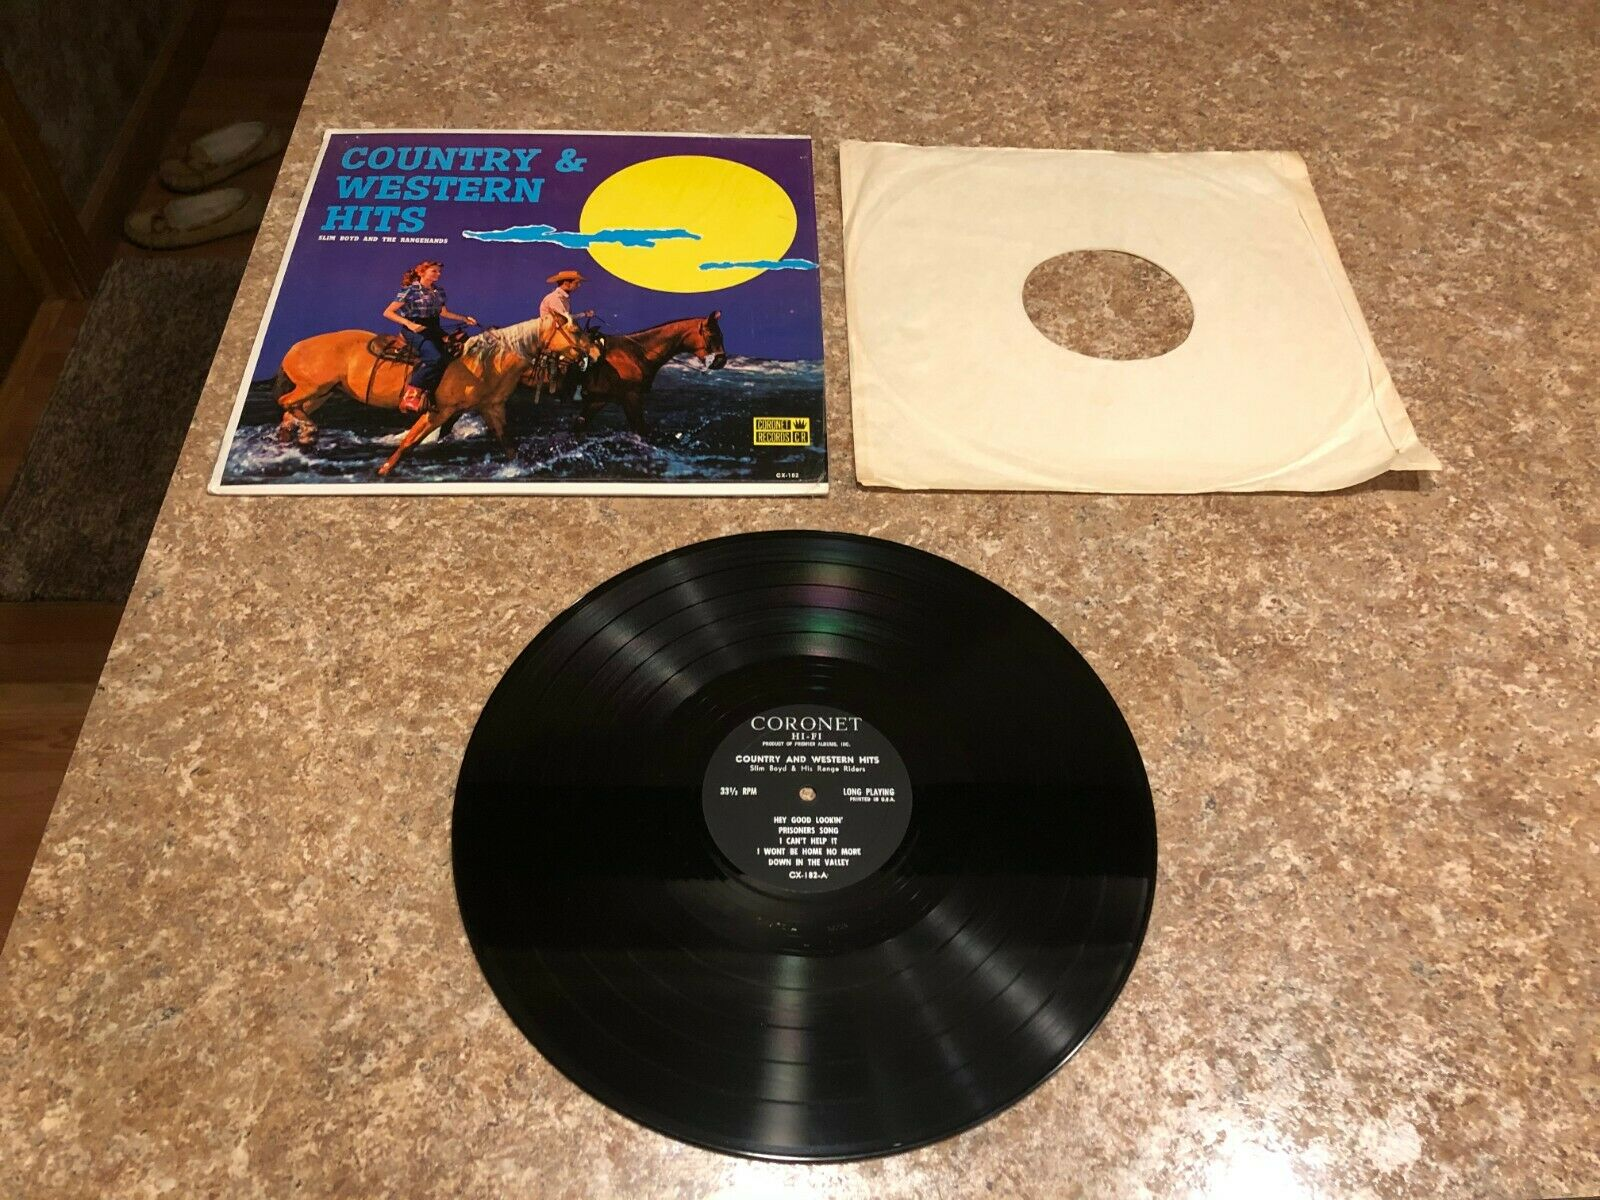 Slim Boyd & Rangehands - Country & Western Hits LP Vinyl Record